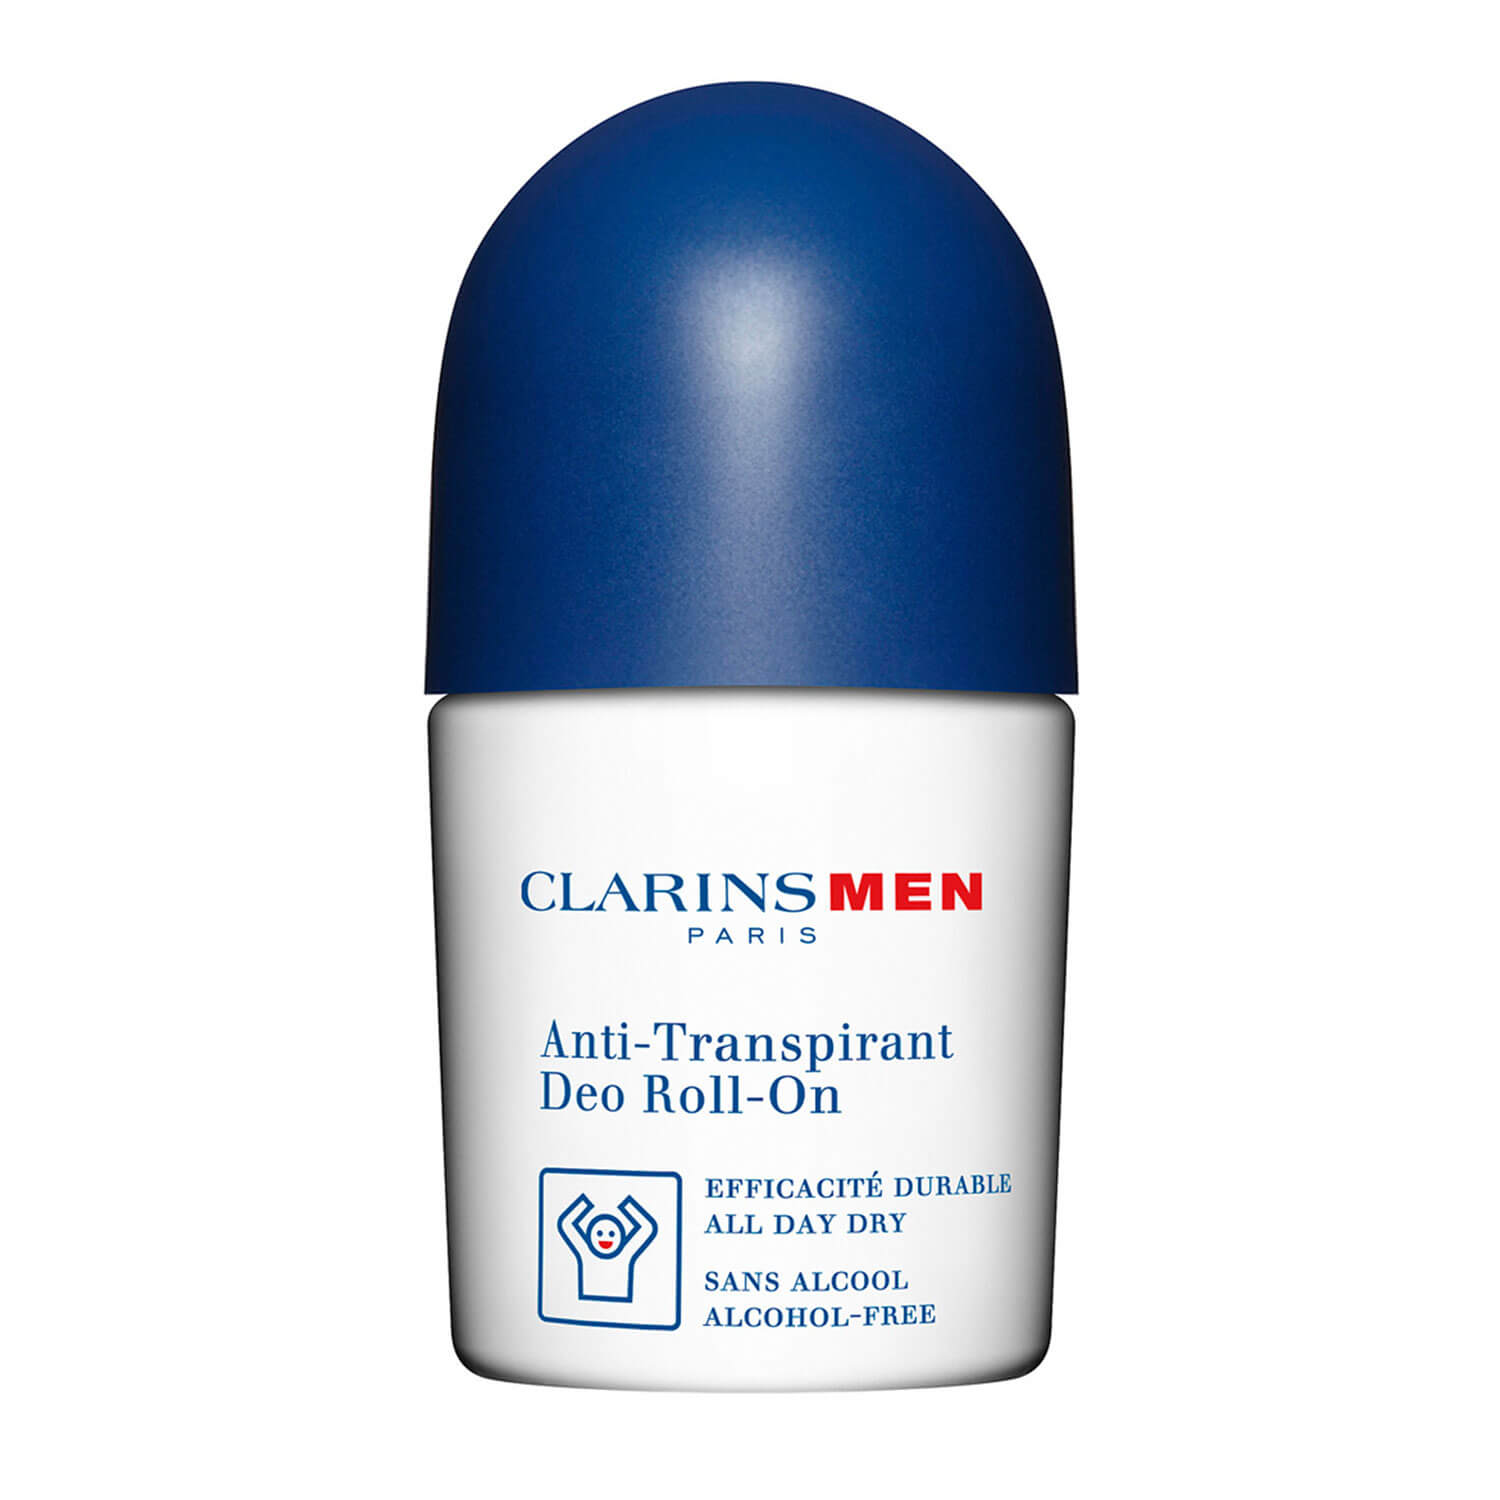 Clarins Men - Deo Roll-On